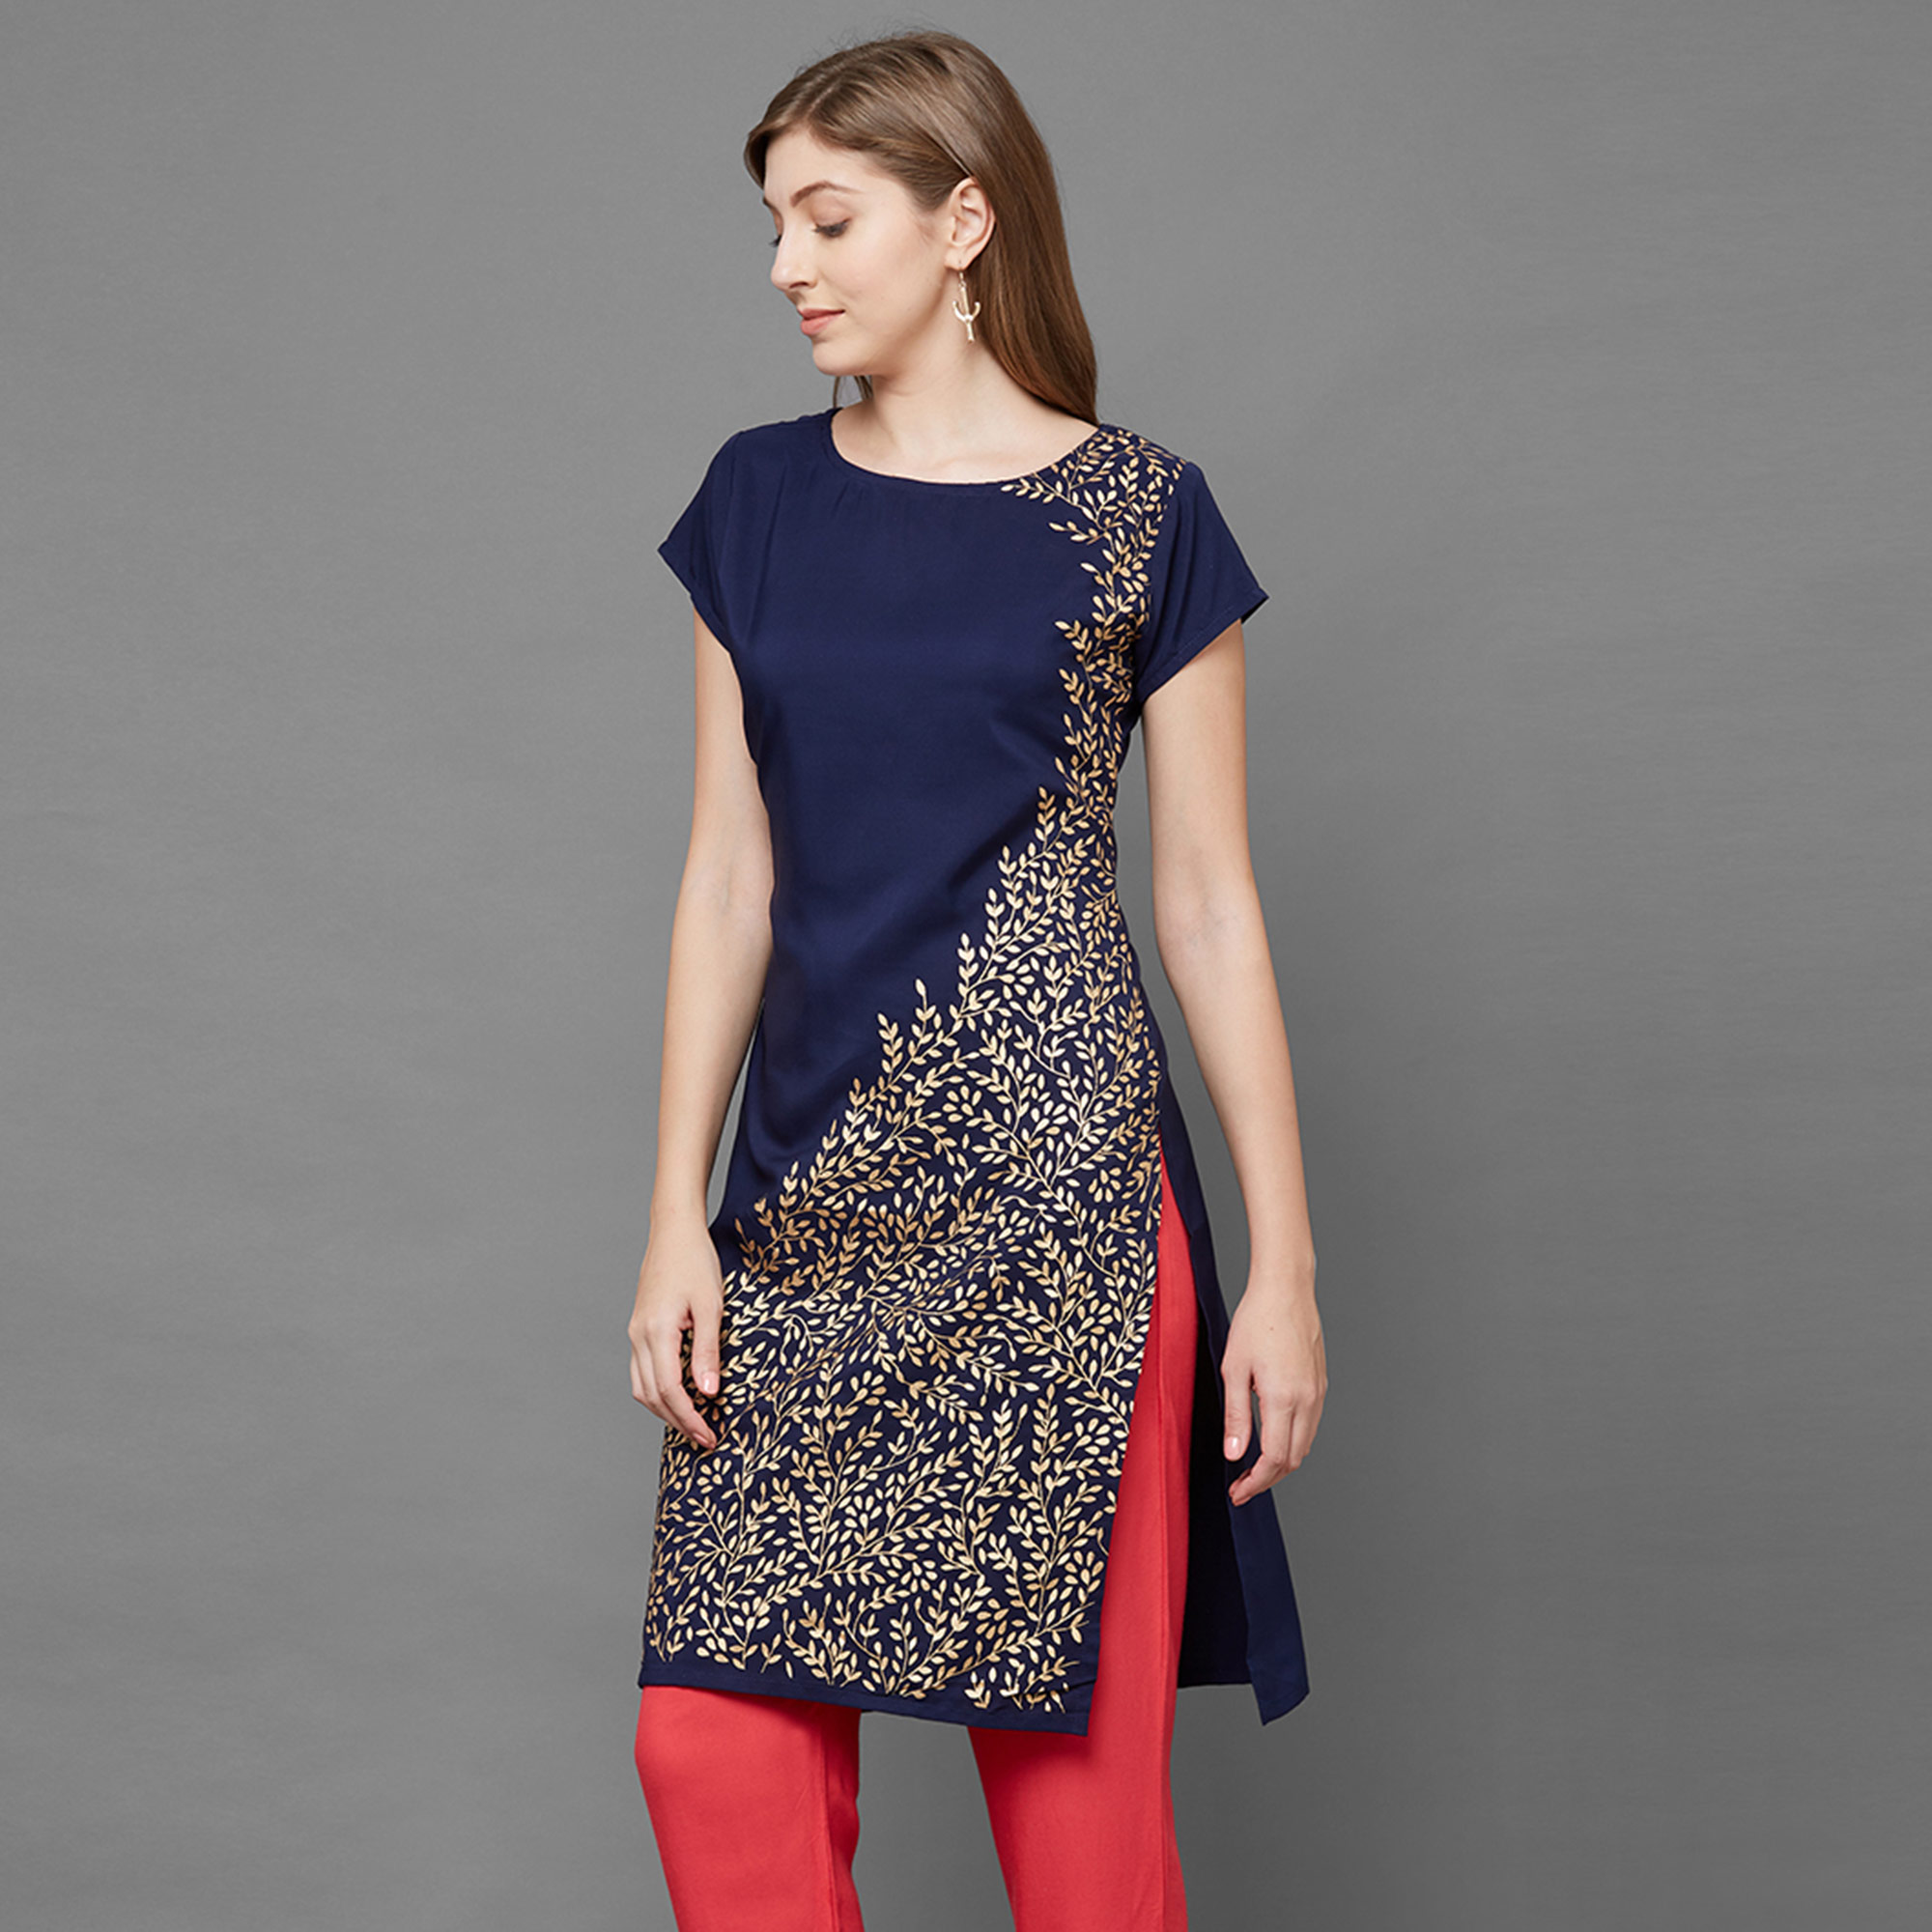 Sophisticated Navy Blue Colored Casual Foil Printed Crepe Kurti